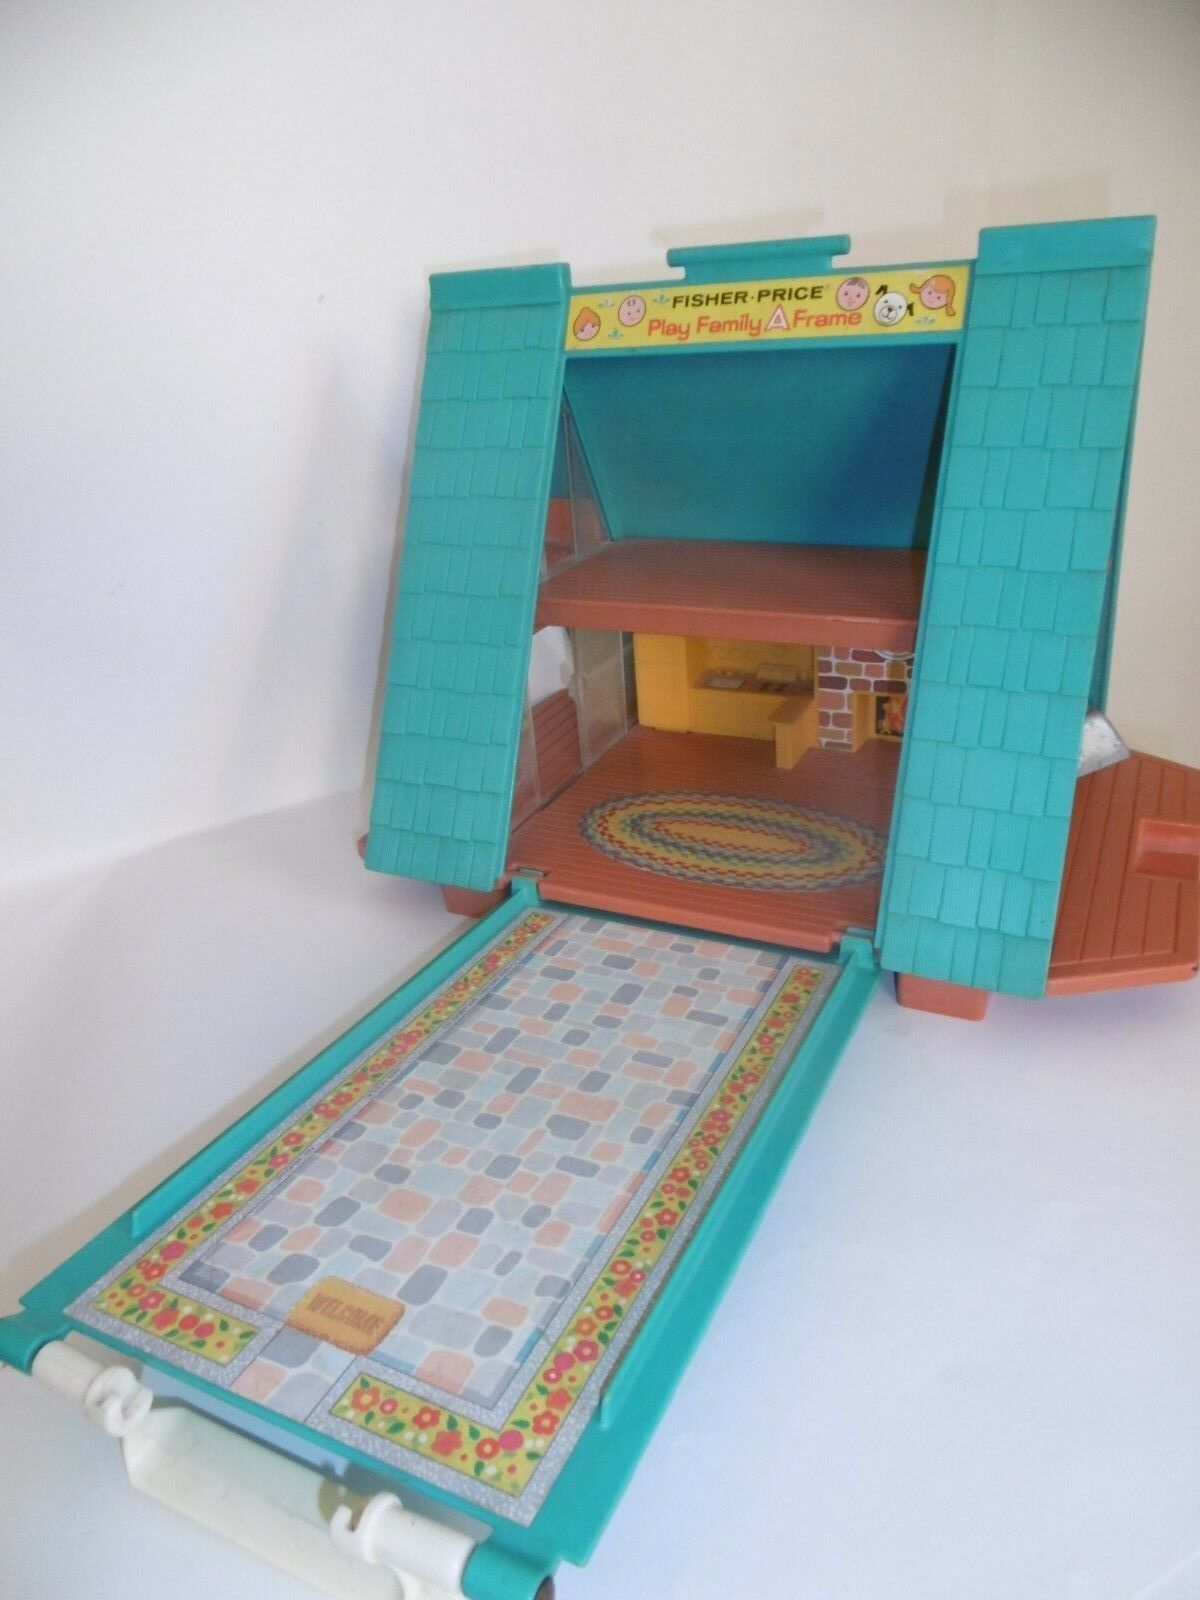 FISHER PRICE PLAY PLAY PLAY FAMILY A FRAME CASA VINTAGE GIOCATTOLO LITTLE PEOPLE TOY 23a5a5